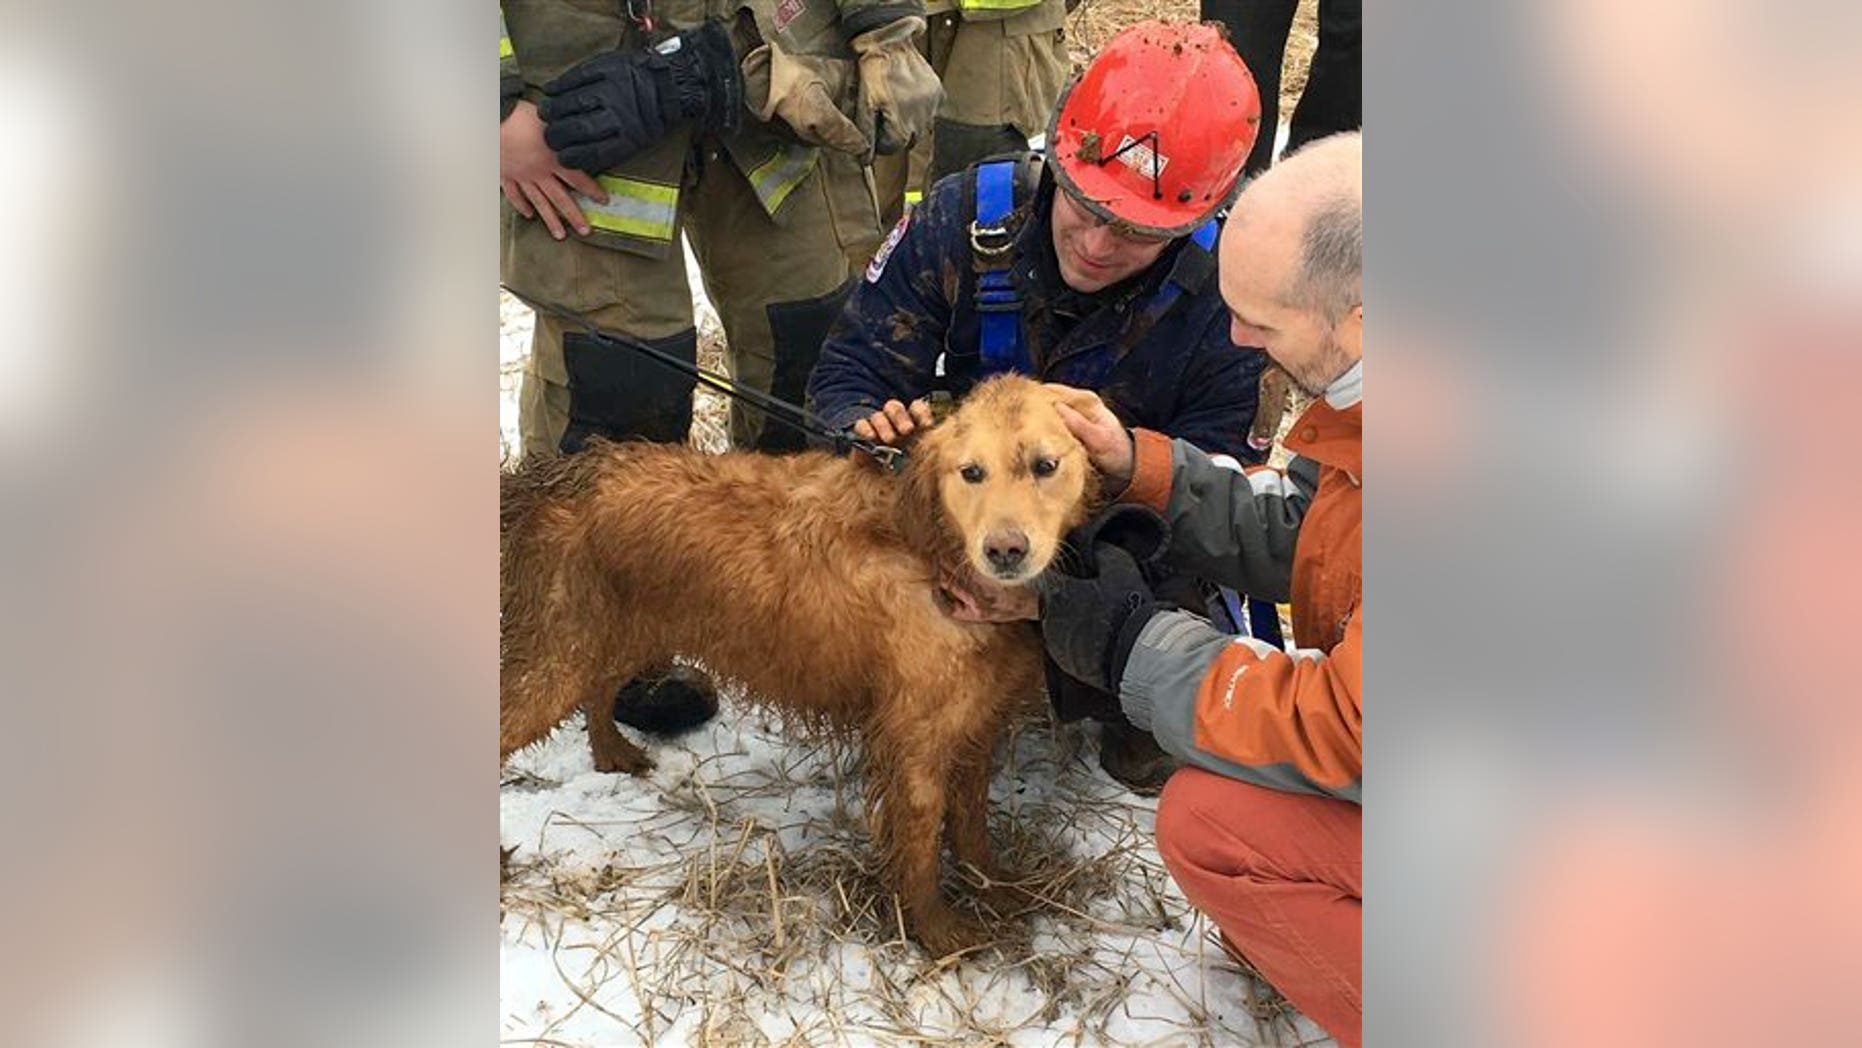 In this photo provided by Ryan McCaughey, rescue workers check Skye, a golden retriever, after being rescued in State College, Pa., Wednesday, Feb. 17, 2016. The dog that spent two nights stuck in a 14-foot-deep sinkhole was rescued Wednesday by firefighters using a makeshift harness. (Ryan McCaughey via AP)